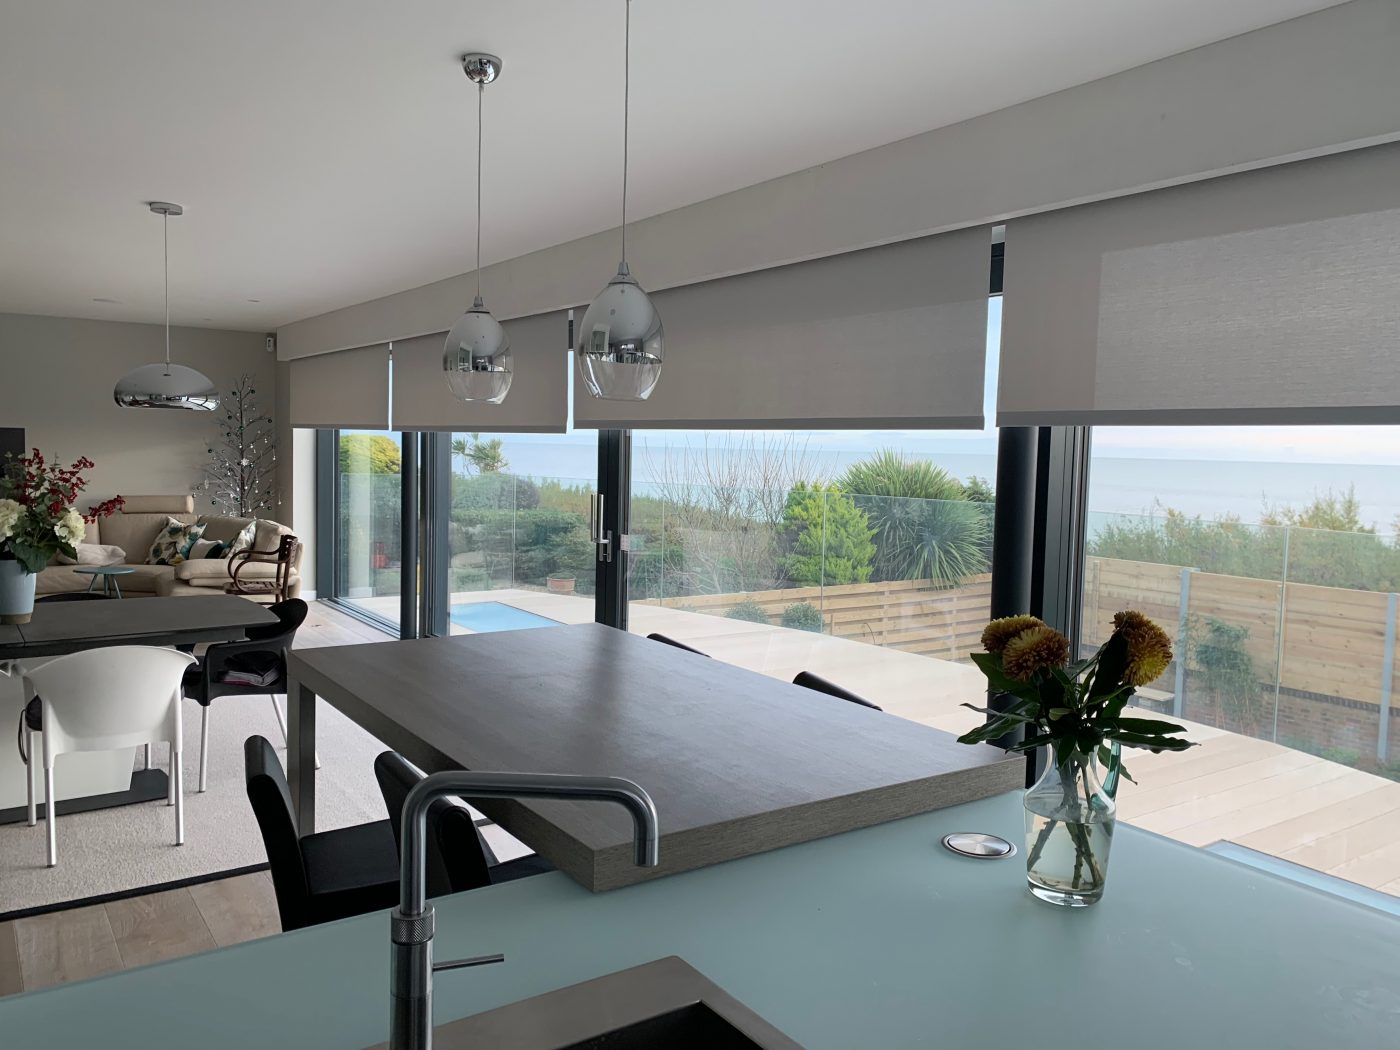 Electric Blinds For Bifold Sliding Doors The Electric Blind Company